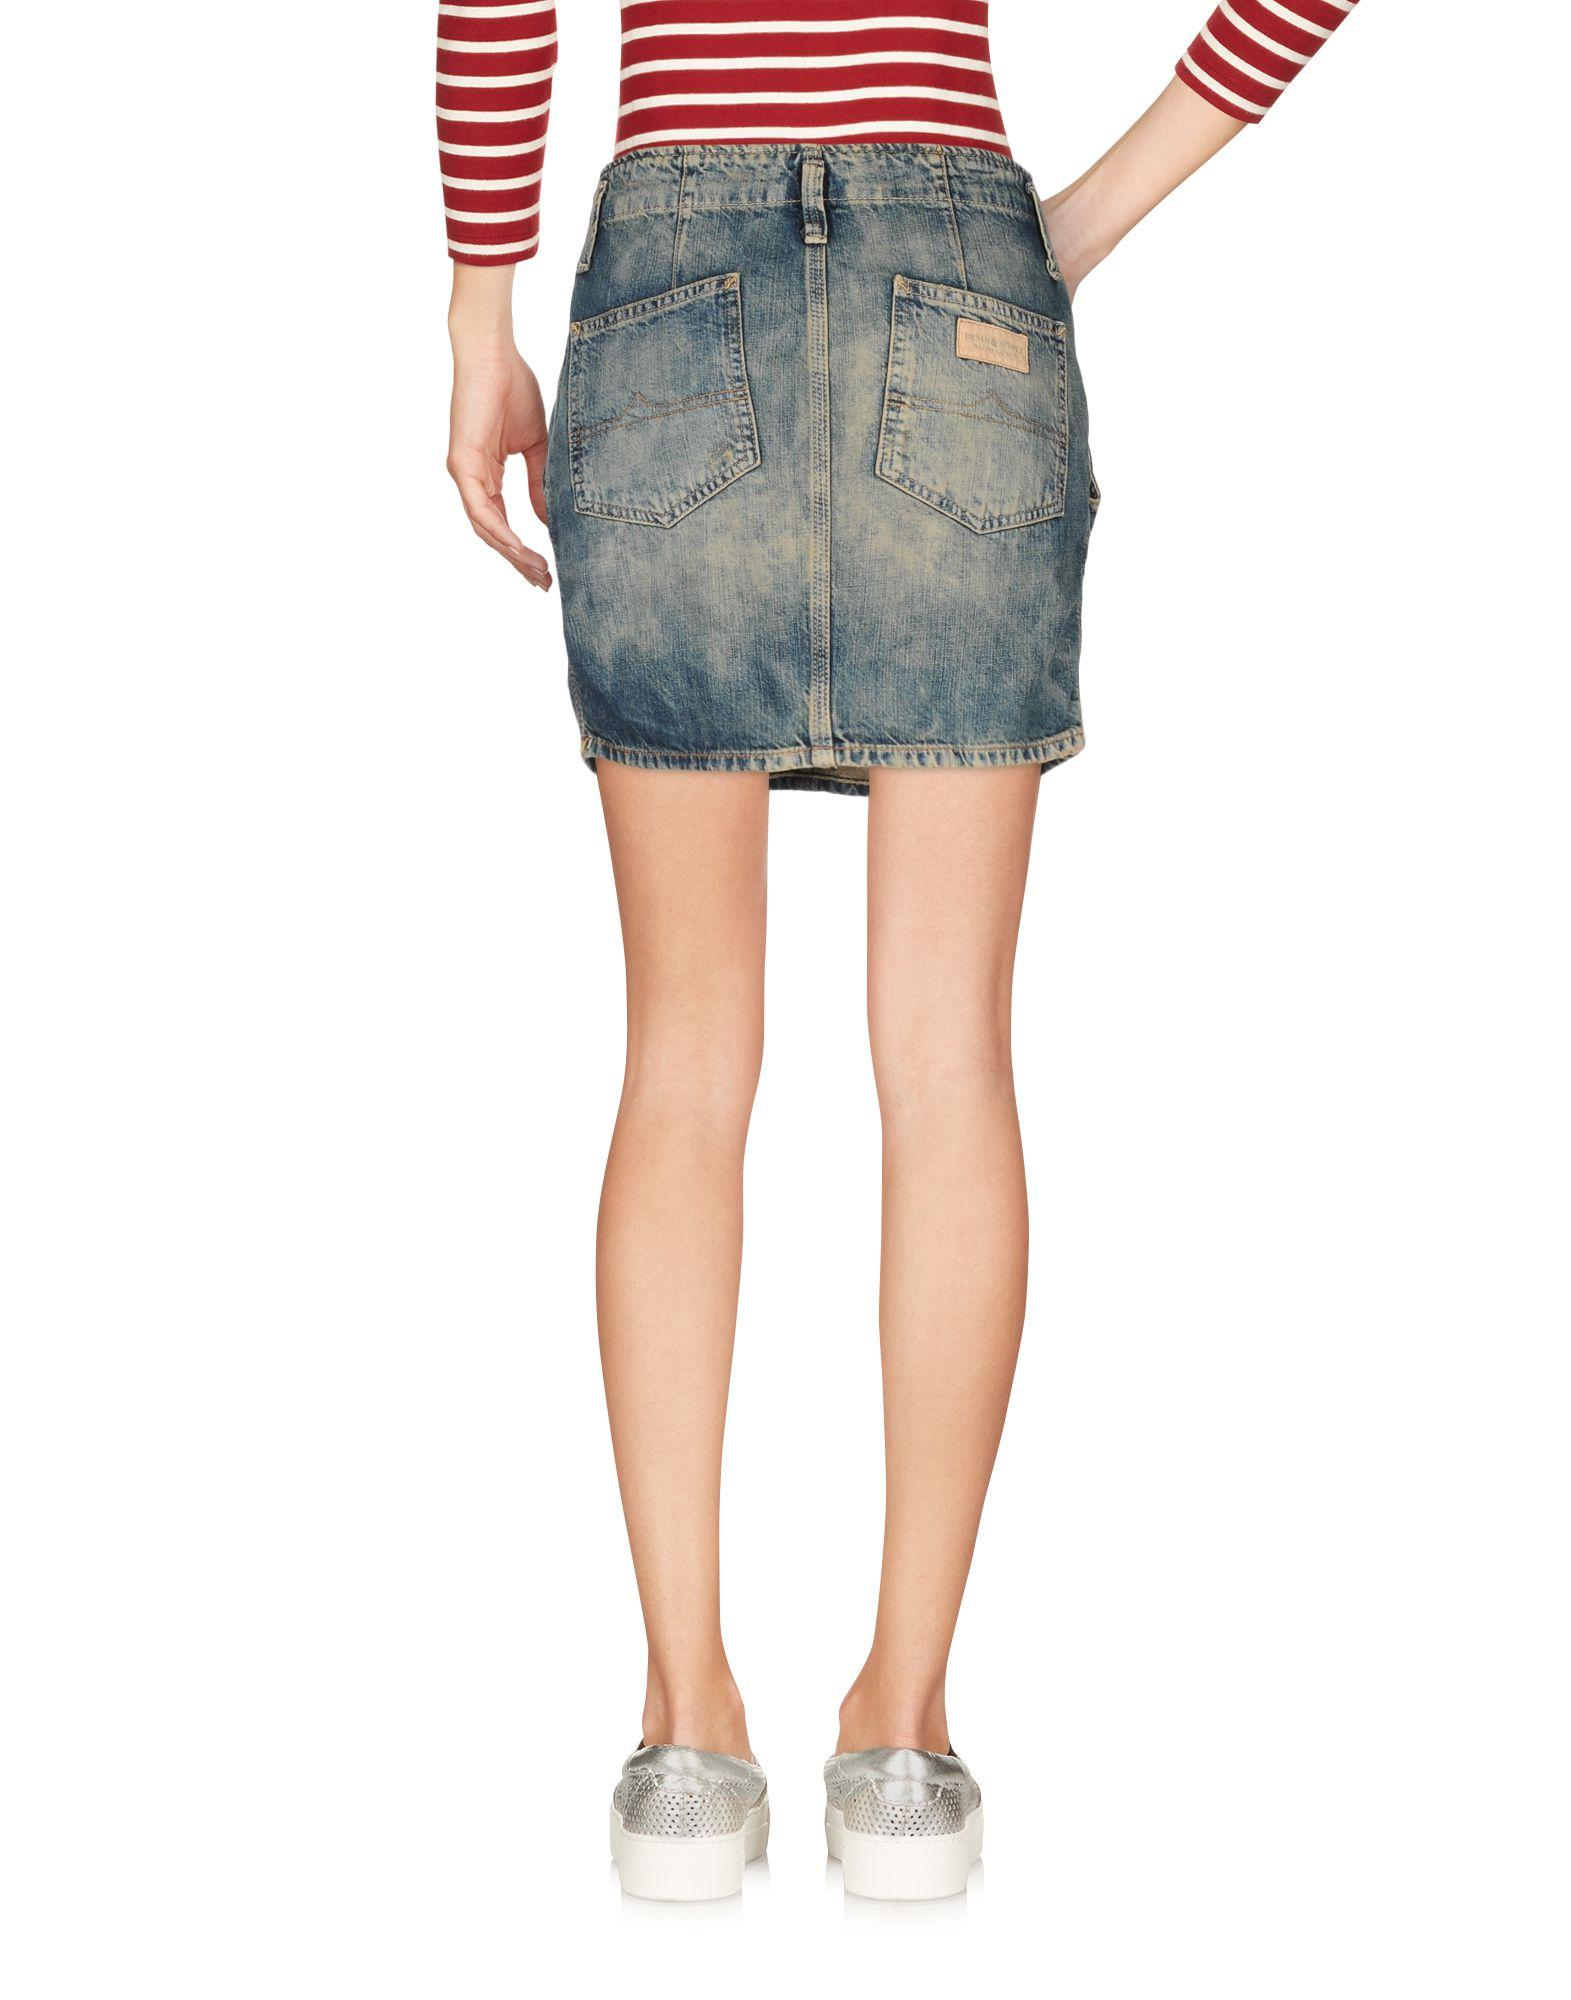 Denim & supply ralph lauren Denim Skirt in Blue | Lyst